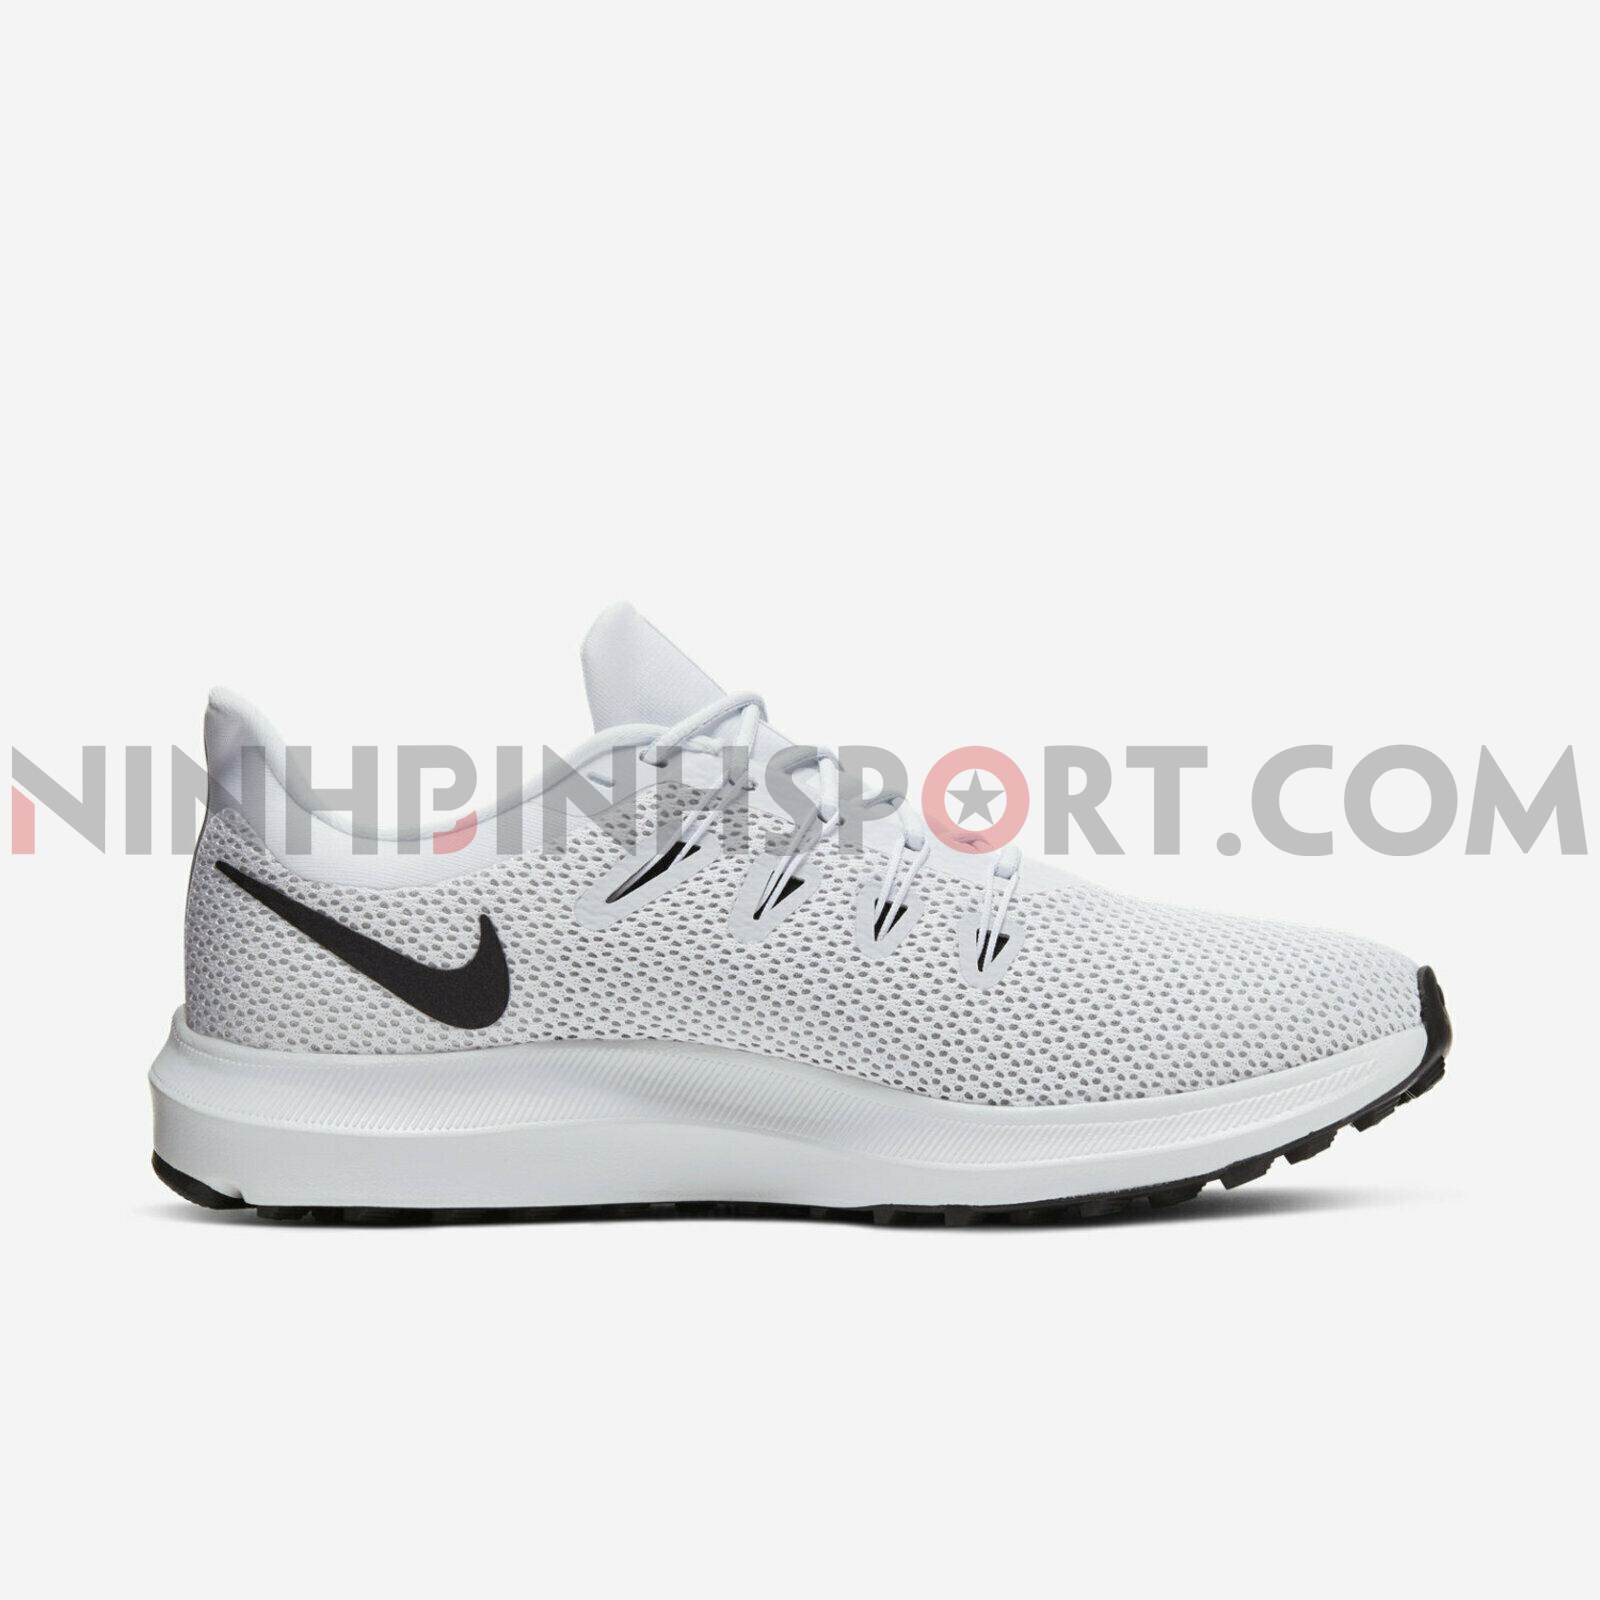 Giầy thể thao nữ Nike Wmns Quest 2 CI3803-100